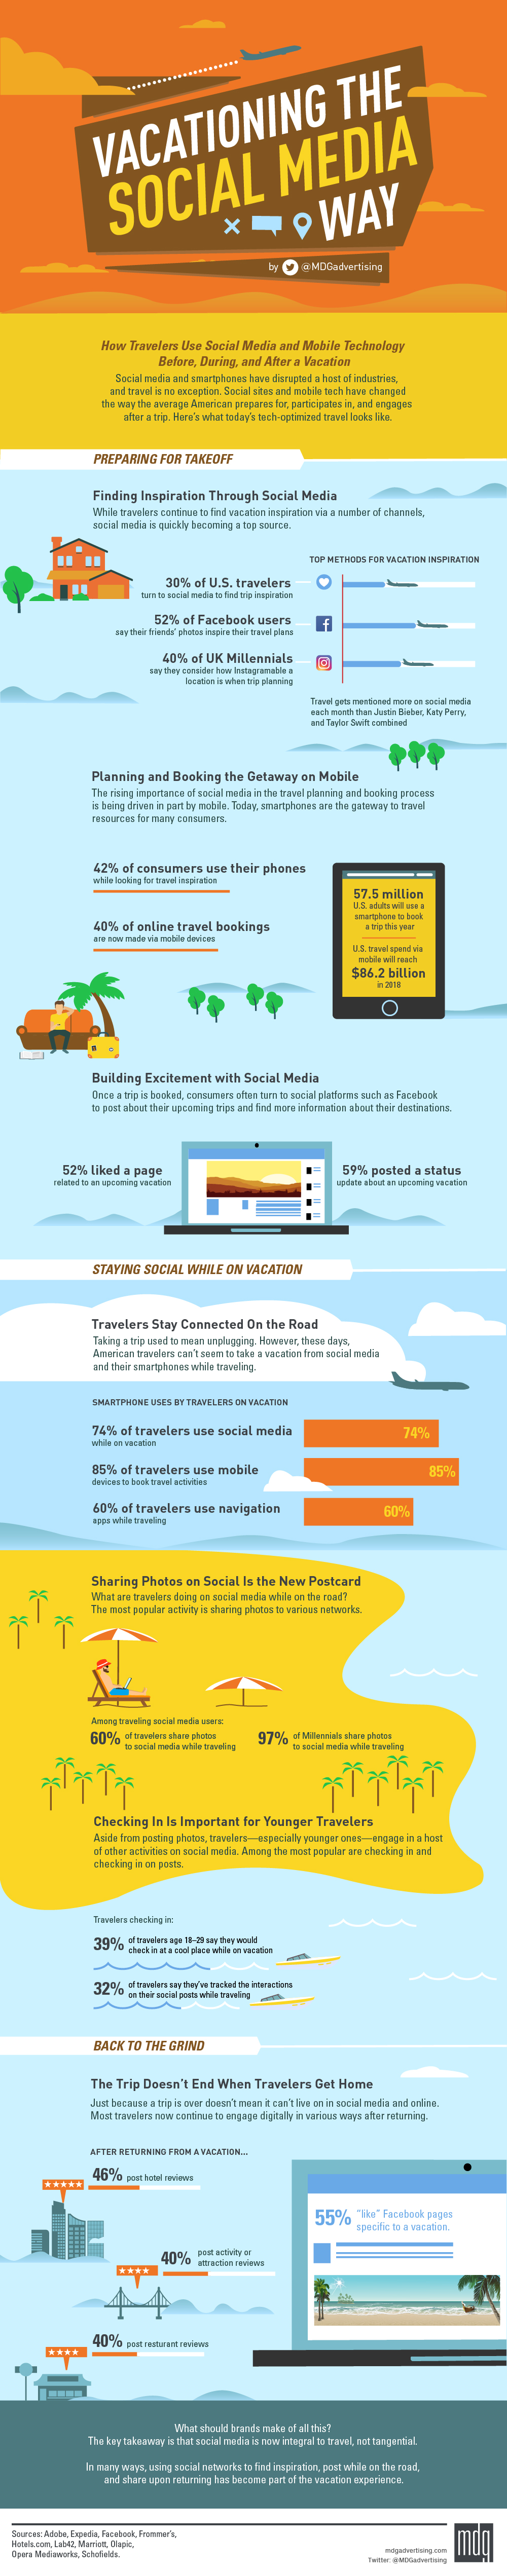 Vacationing the Social Media Way [Infographic]